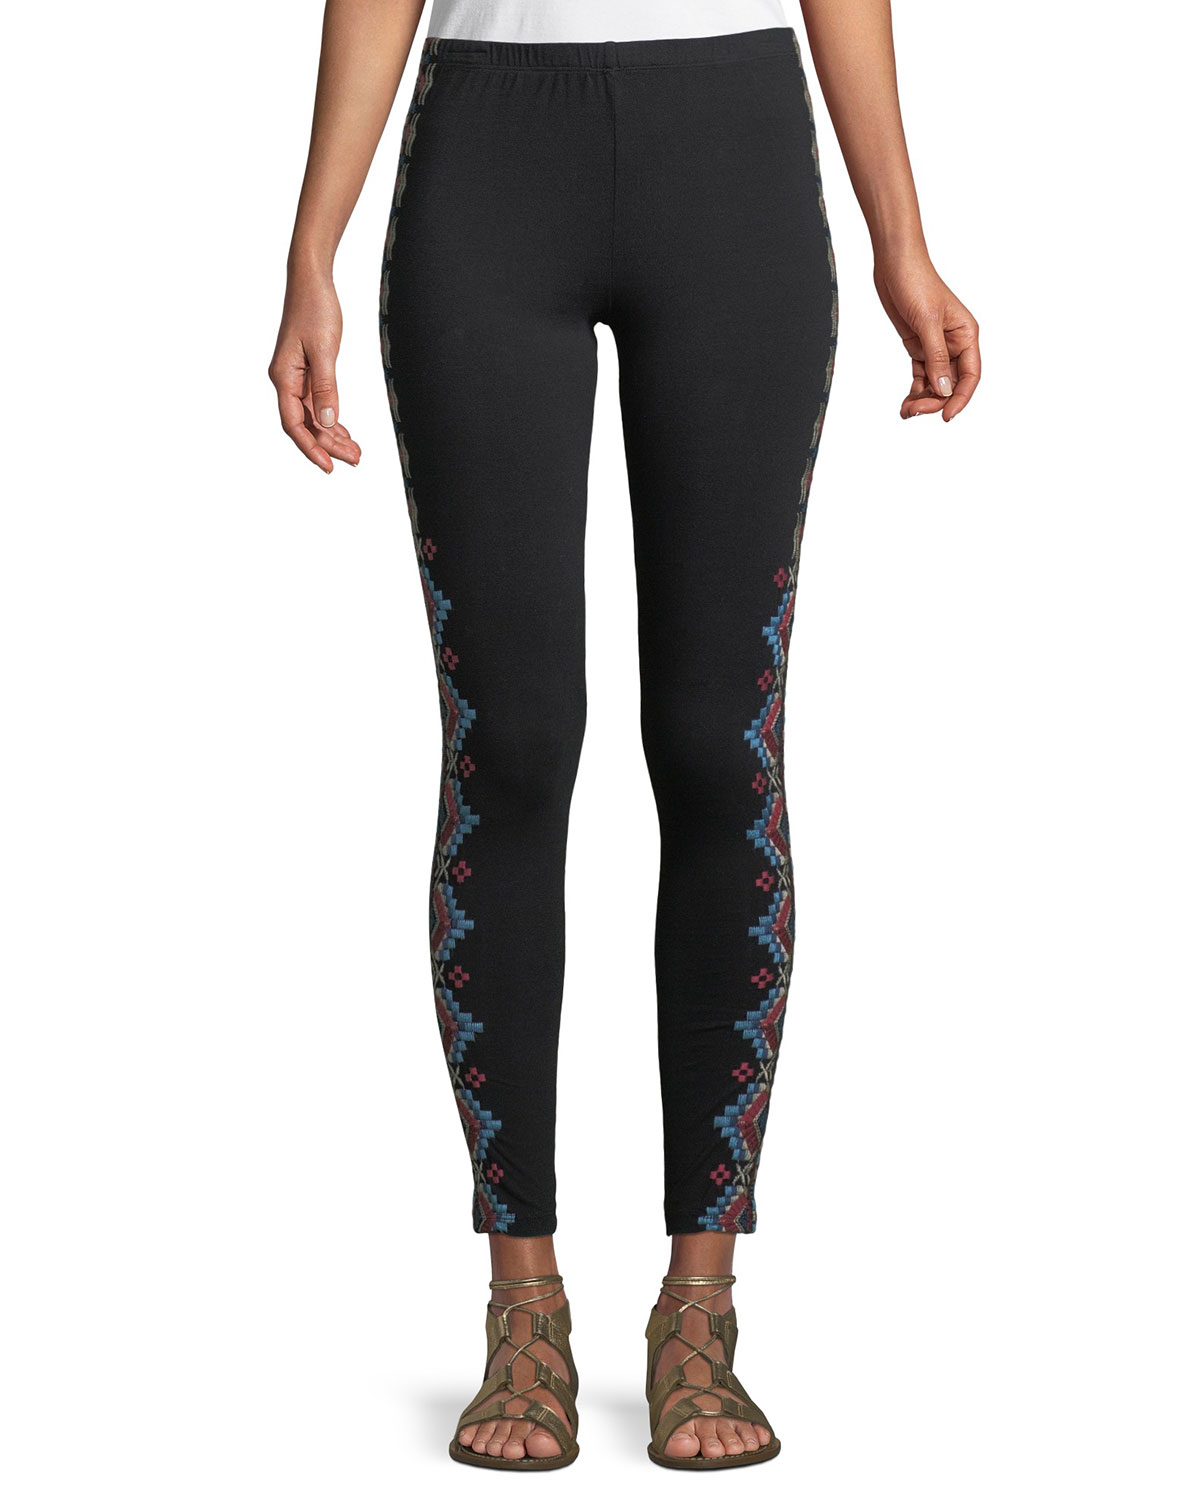 7052c7b06d42c2 Johnny Was Sonoma Embroidered Leggings, Plus Size | Neiman Marcus